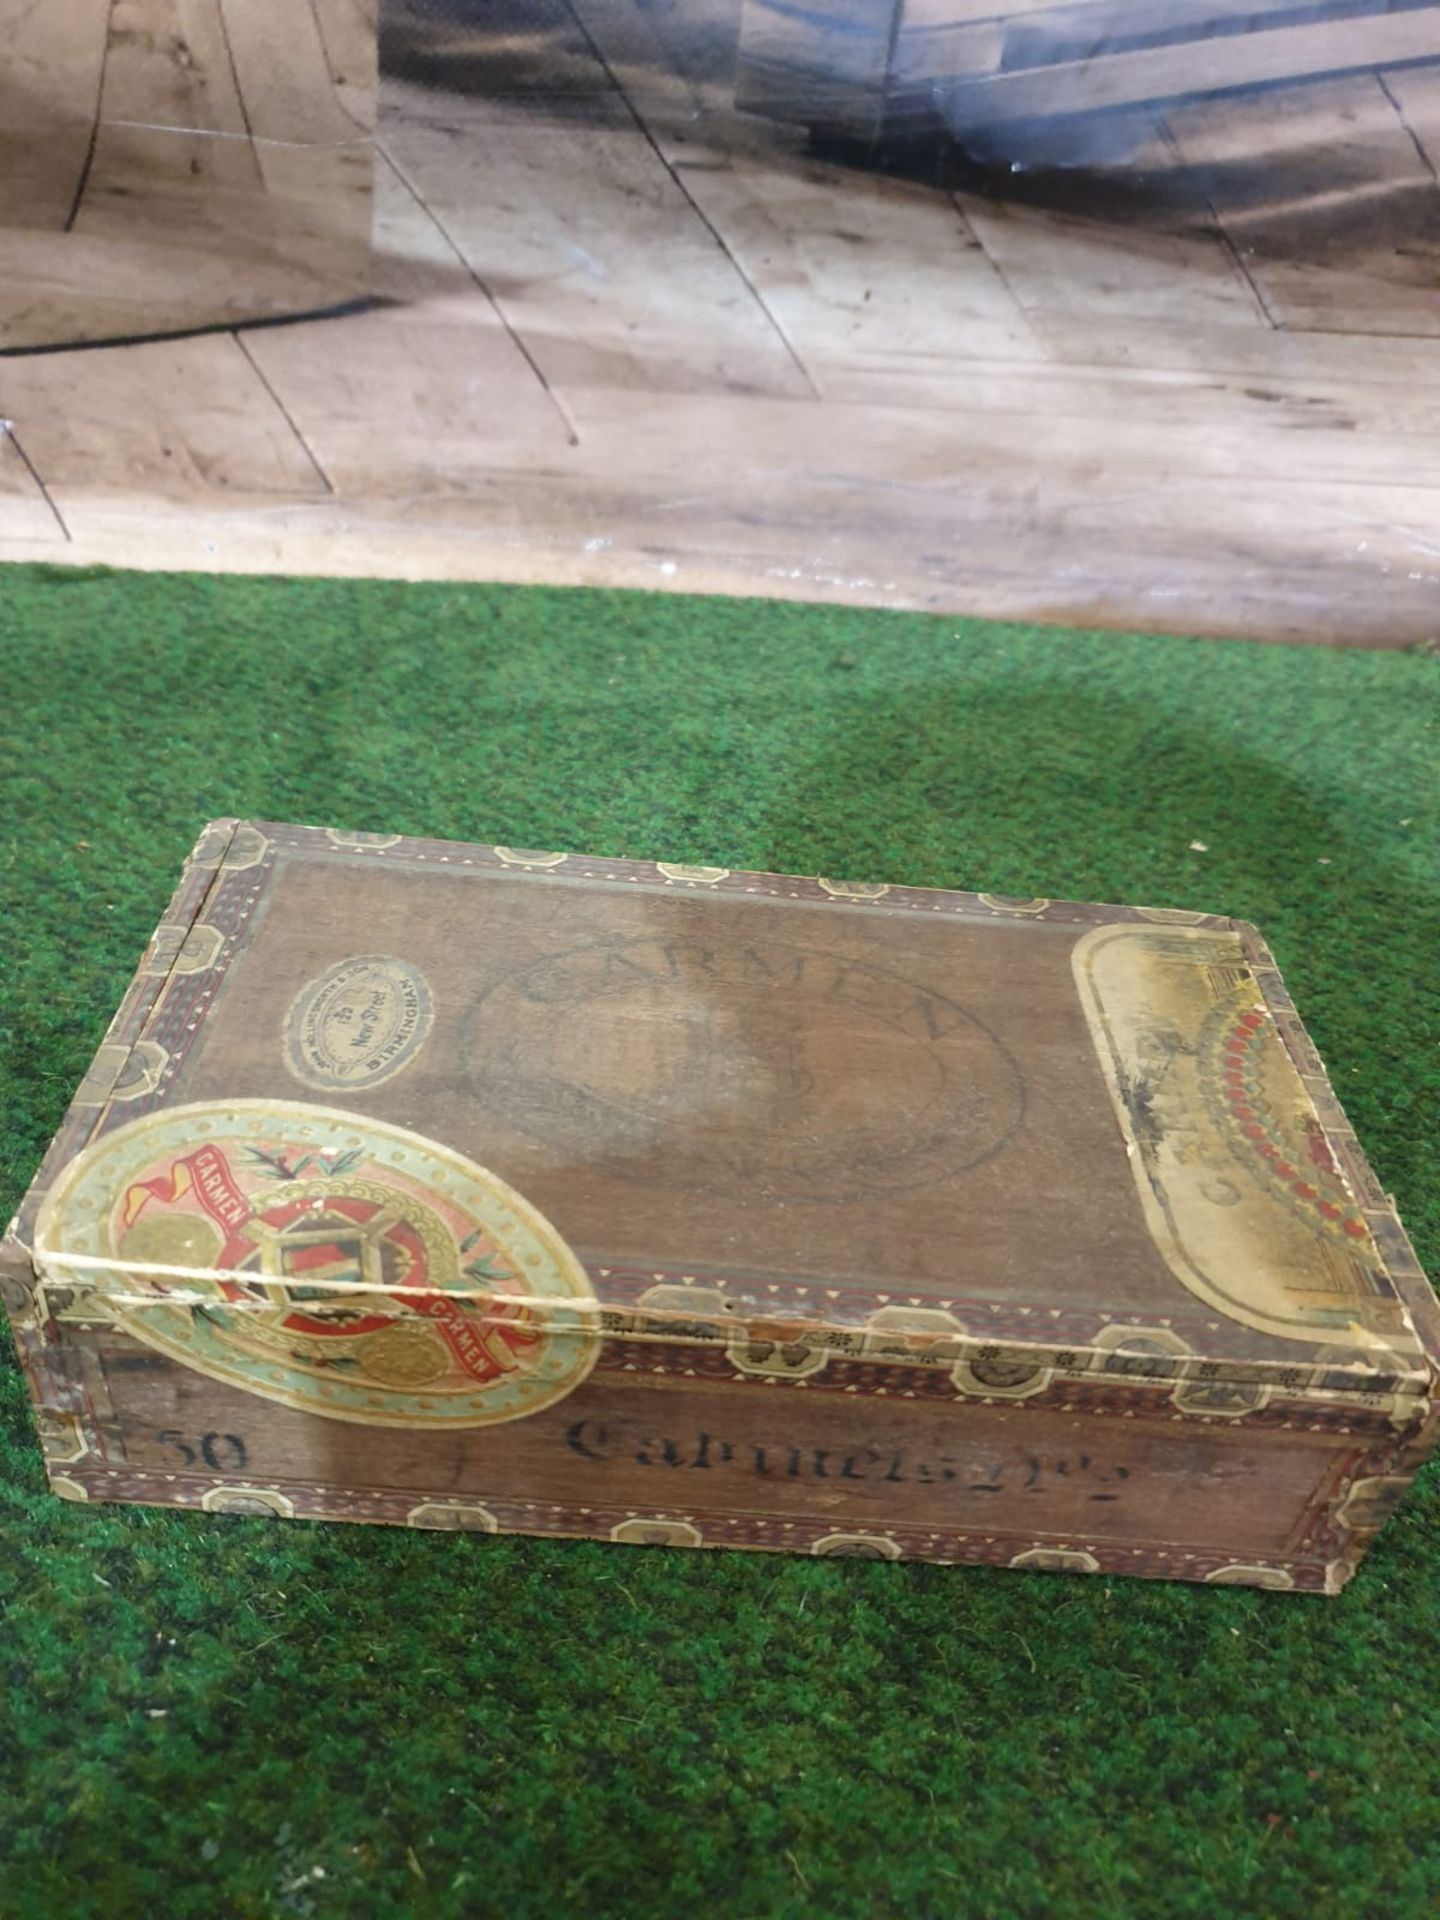 2 x vintage tobacco boxes Antique Players Navy Cut 50 Cigarettes Tin from Player & Sons in